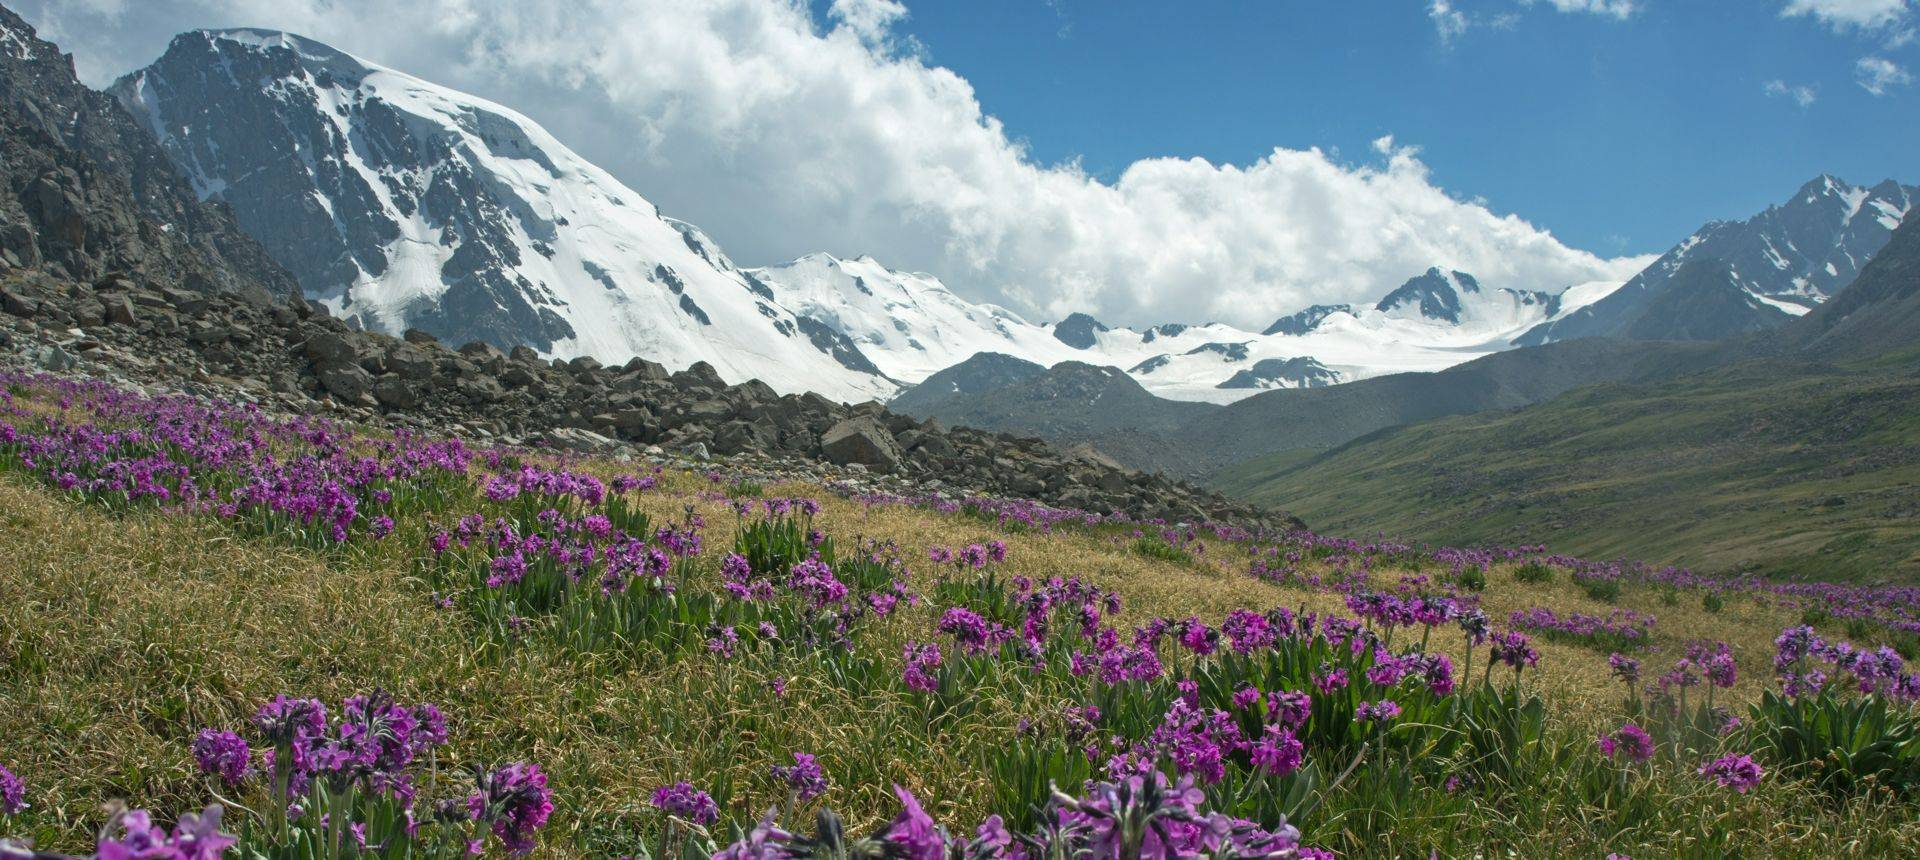 Tien Shan Mountains